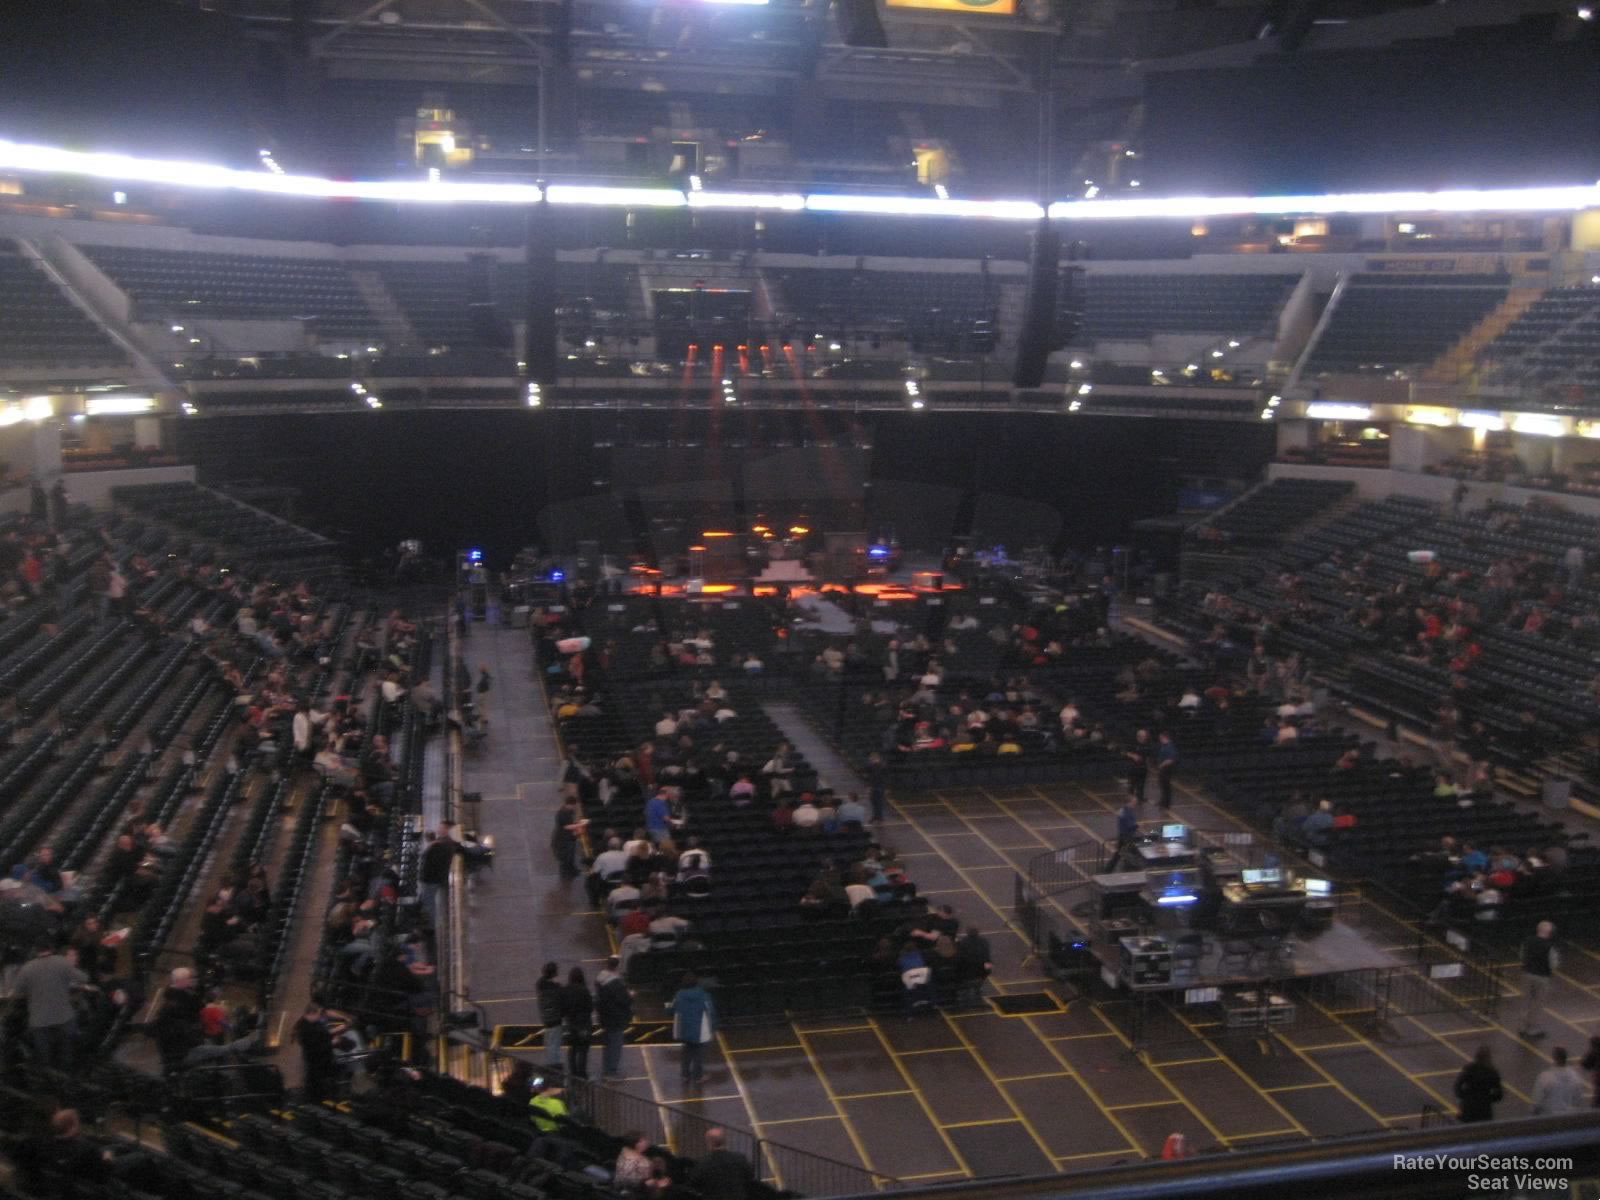 Bankers Life Fieldhouse Section 111 Concert Seating